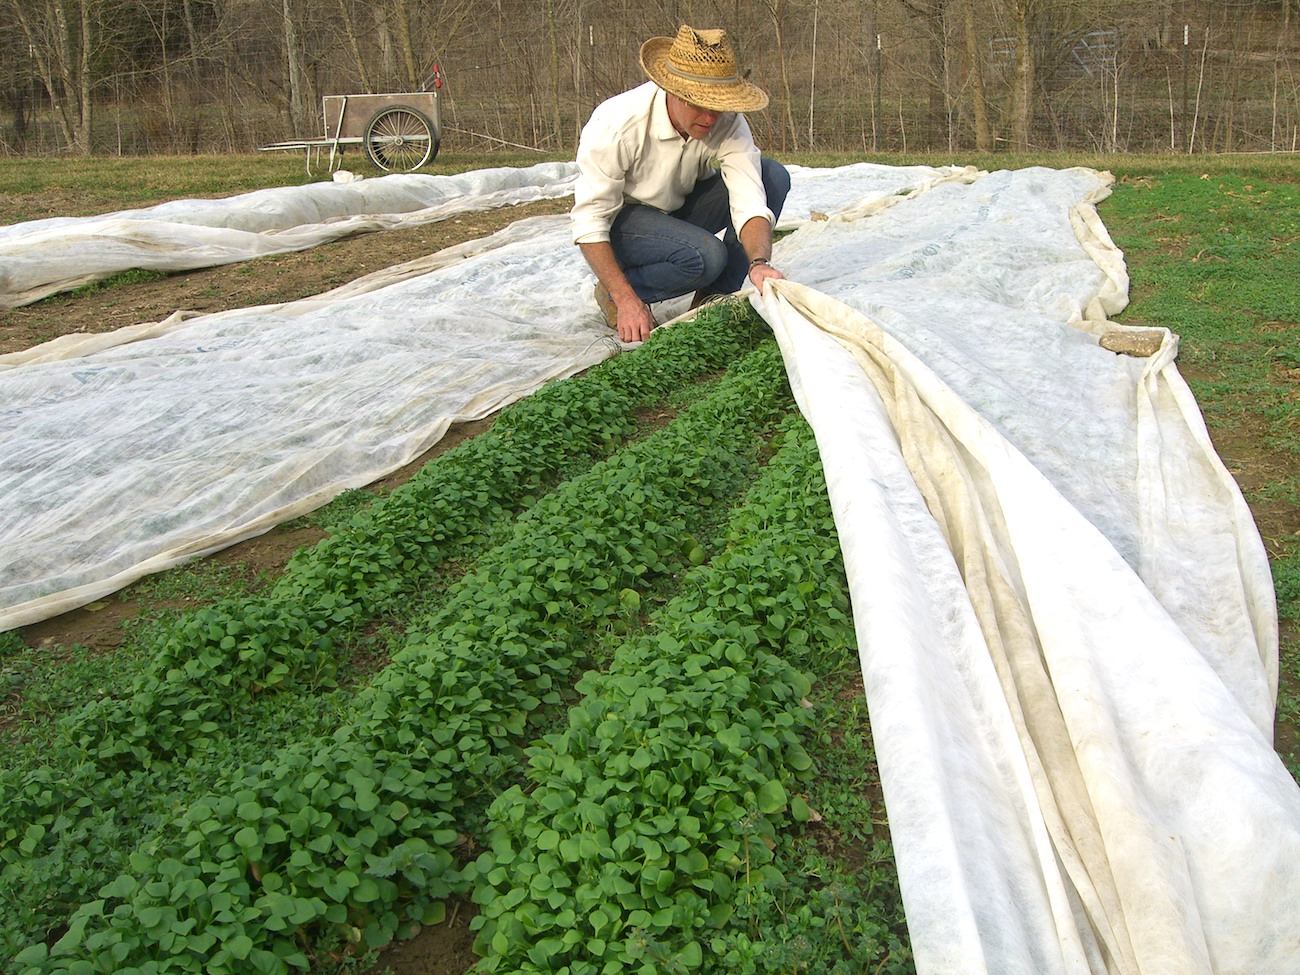 Tobacco cotton helps protect Three Springs Farm's claytonia crop. A pleasant day in February allows for harvesting a bag or two to take to Honeywood.